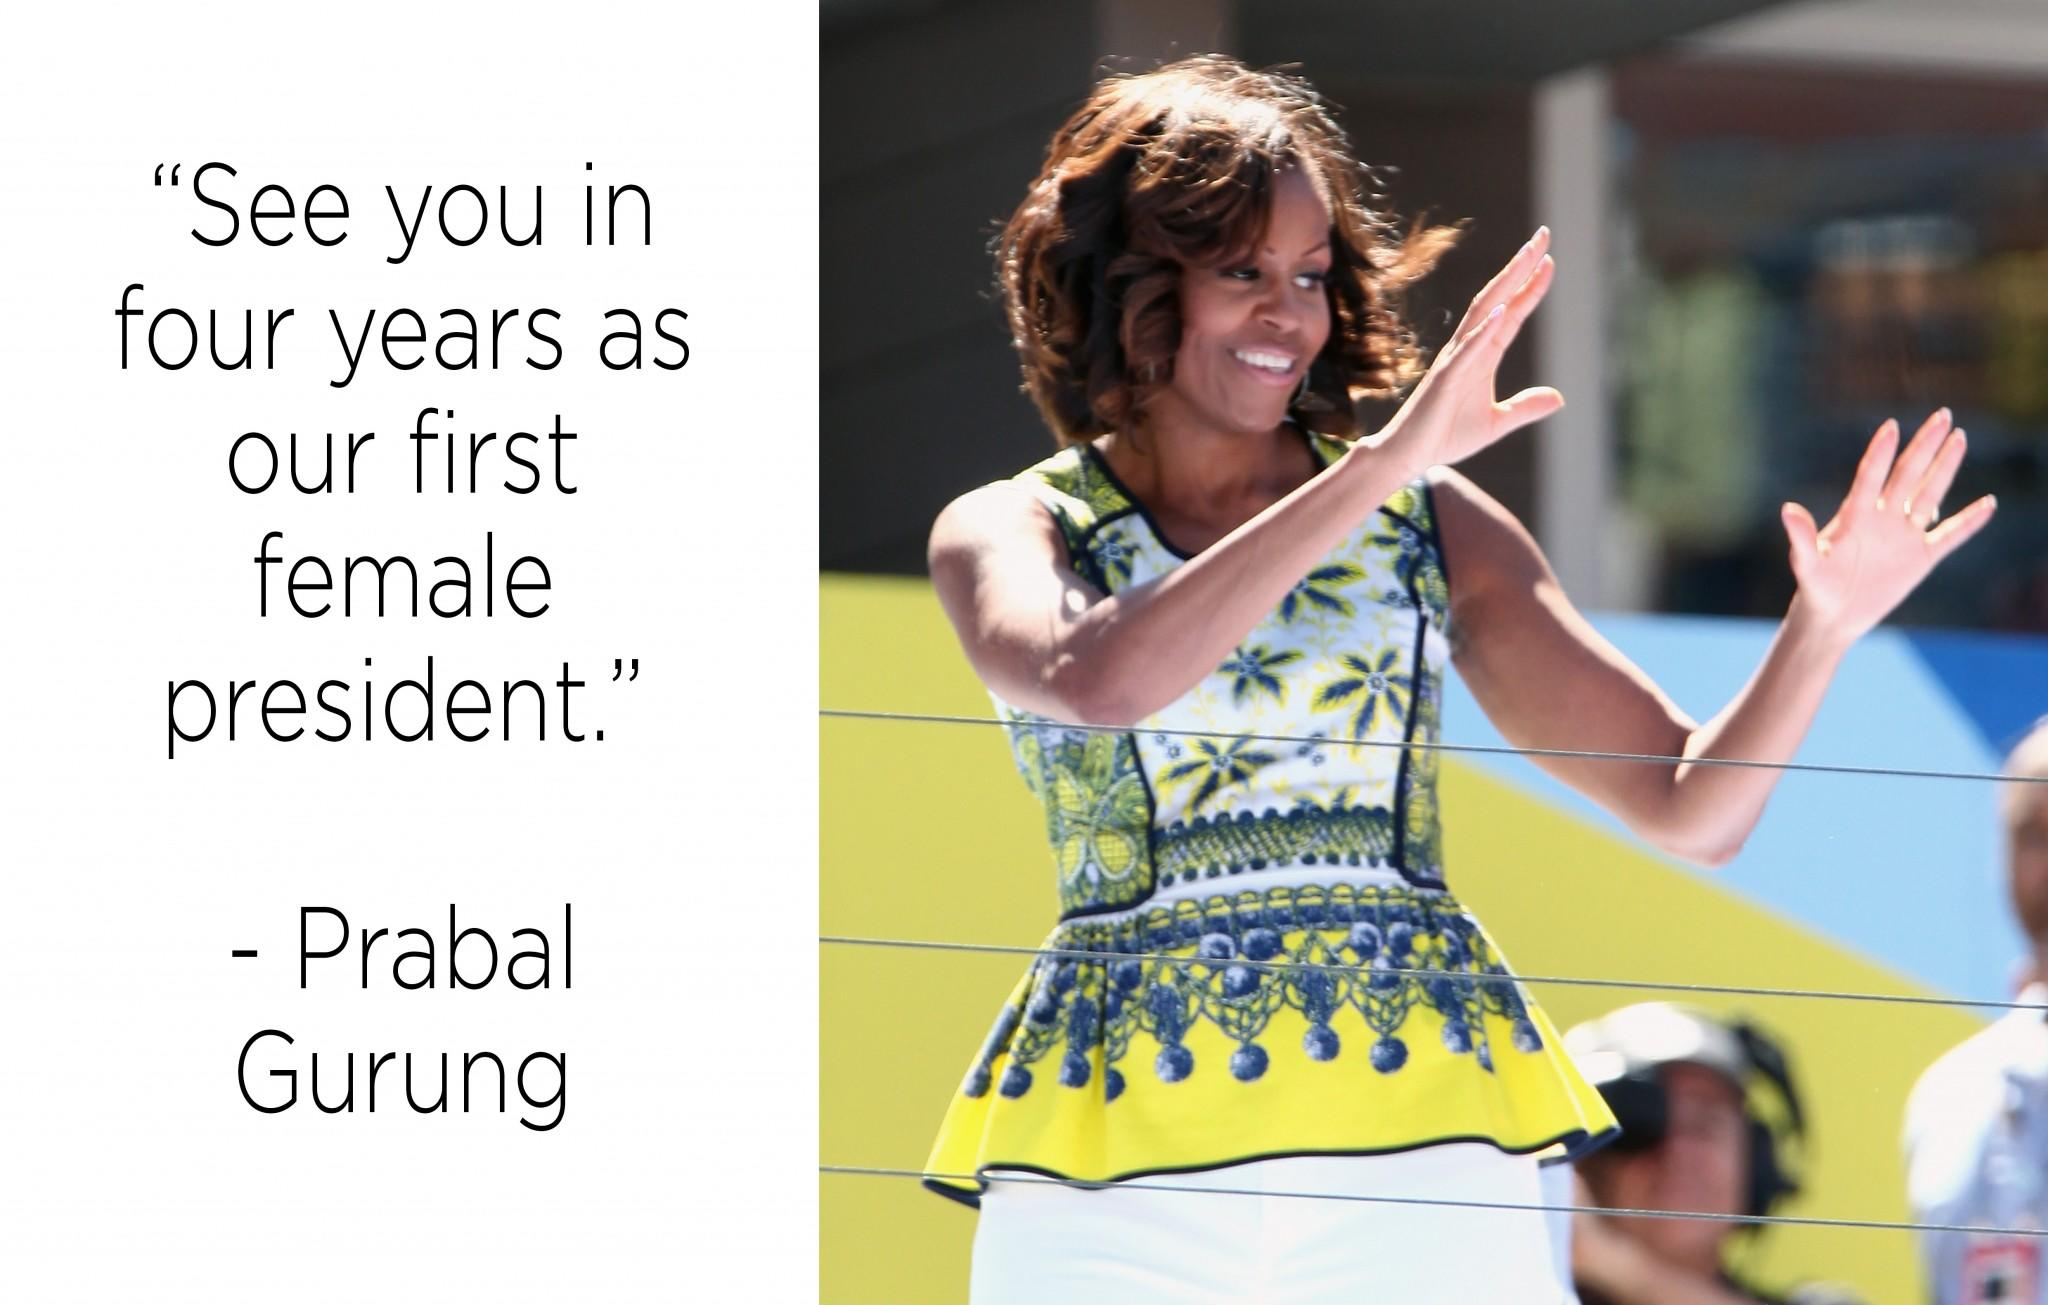 Fashion designers write beautiful thank you notes to Michelle Obama as she vacates the White House